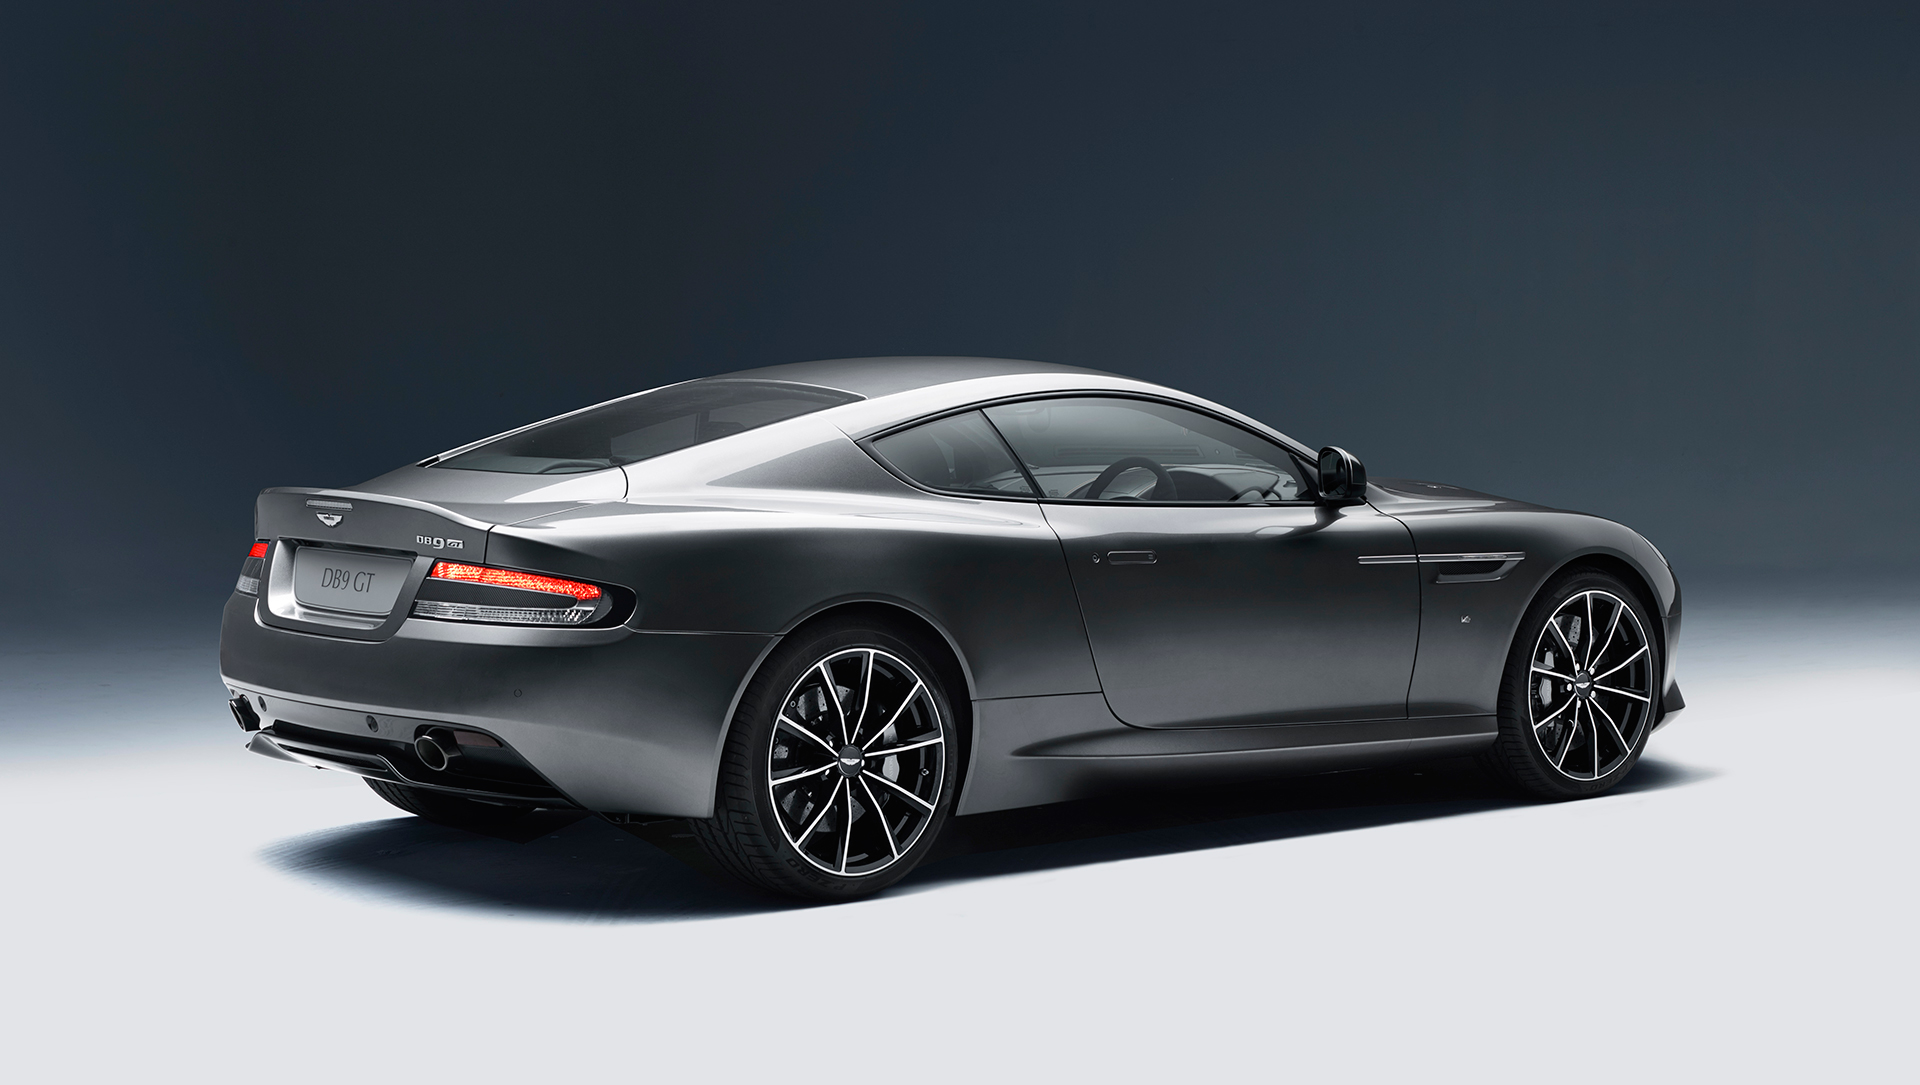 Aston Martin DB9 GT - 2015 - profil arrière / rear side-face